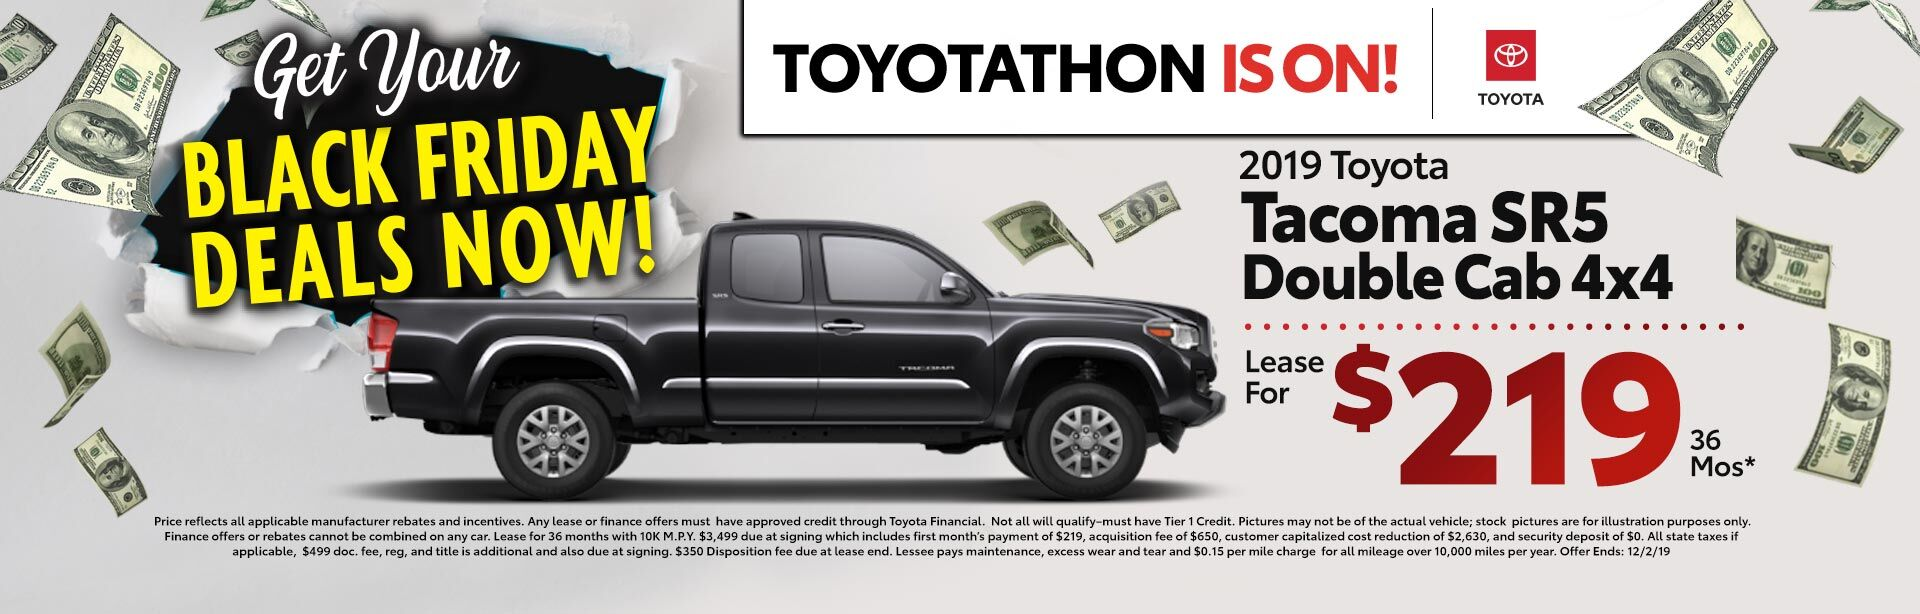 2019 Toyota Tacoma TRD at McGee Toyota of Epping